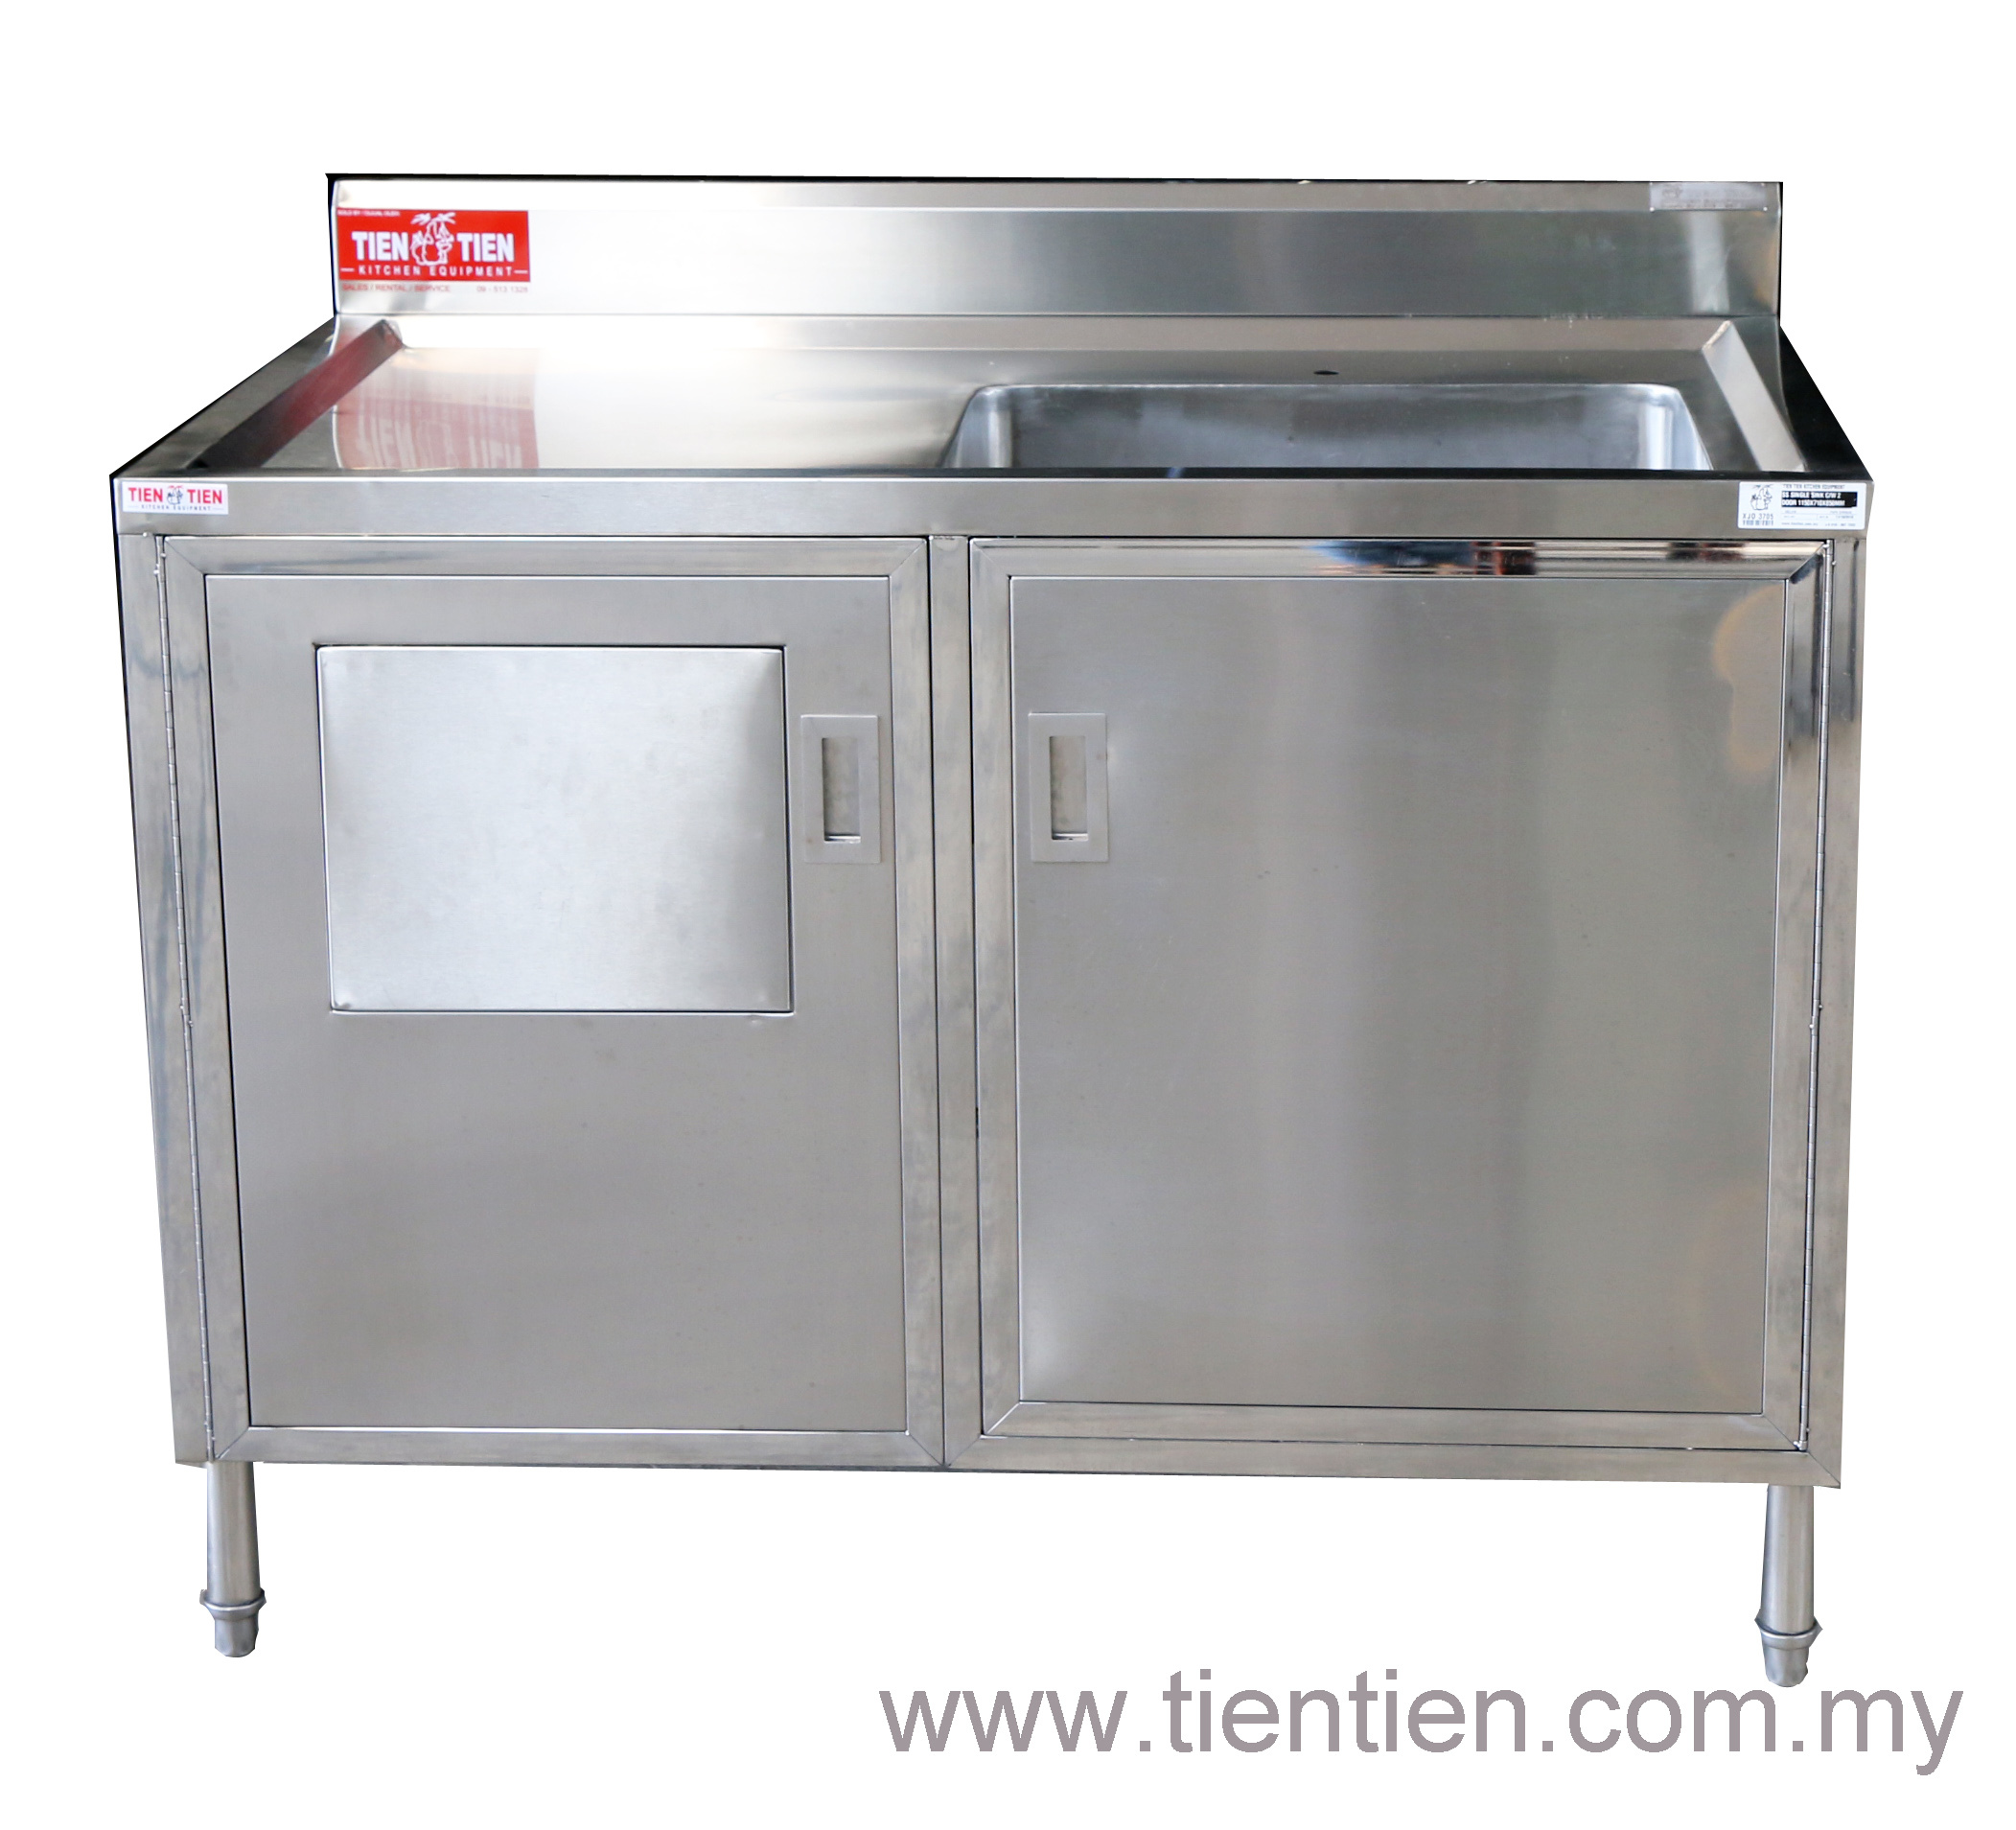 TIEN TIEN customized round sink bowl with cabinet and dump bin.jpg